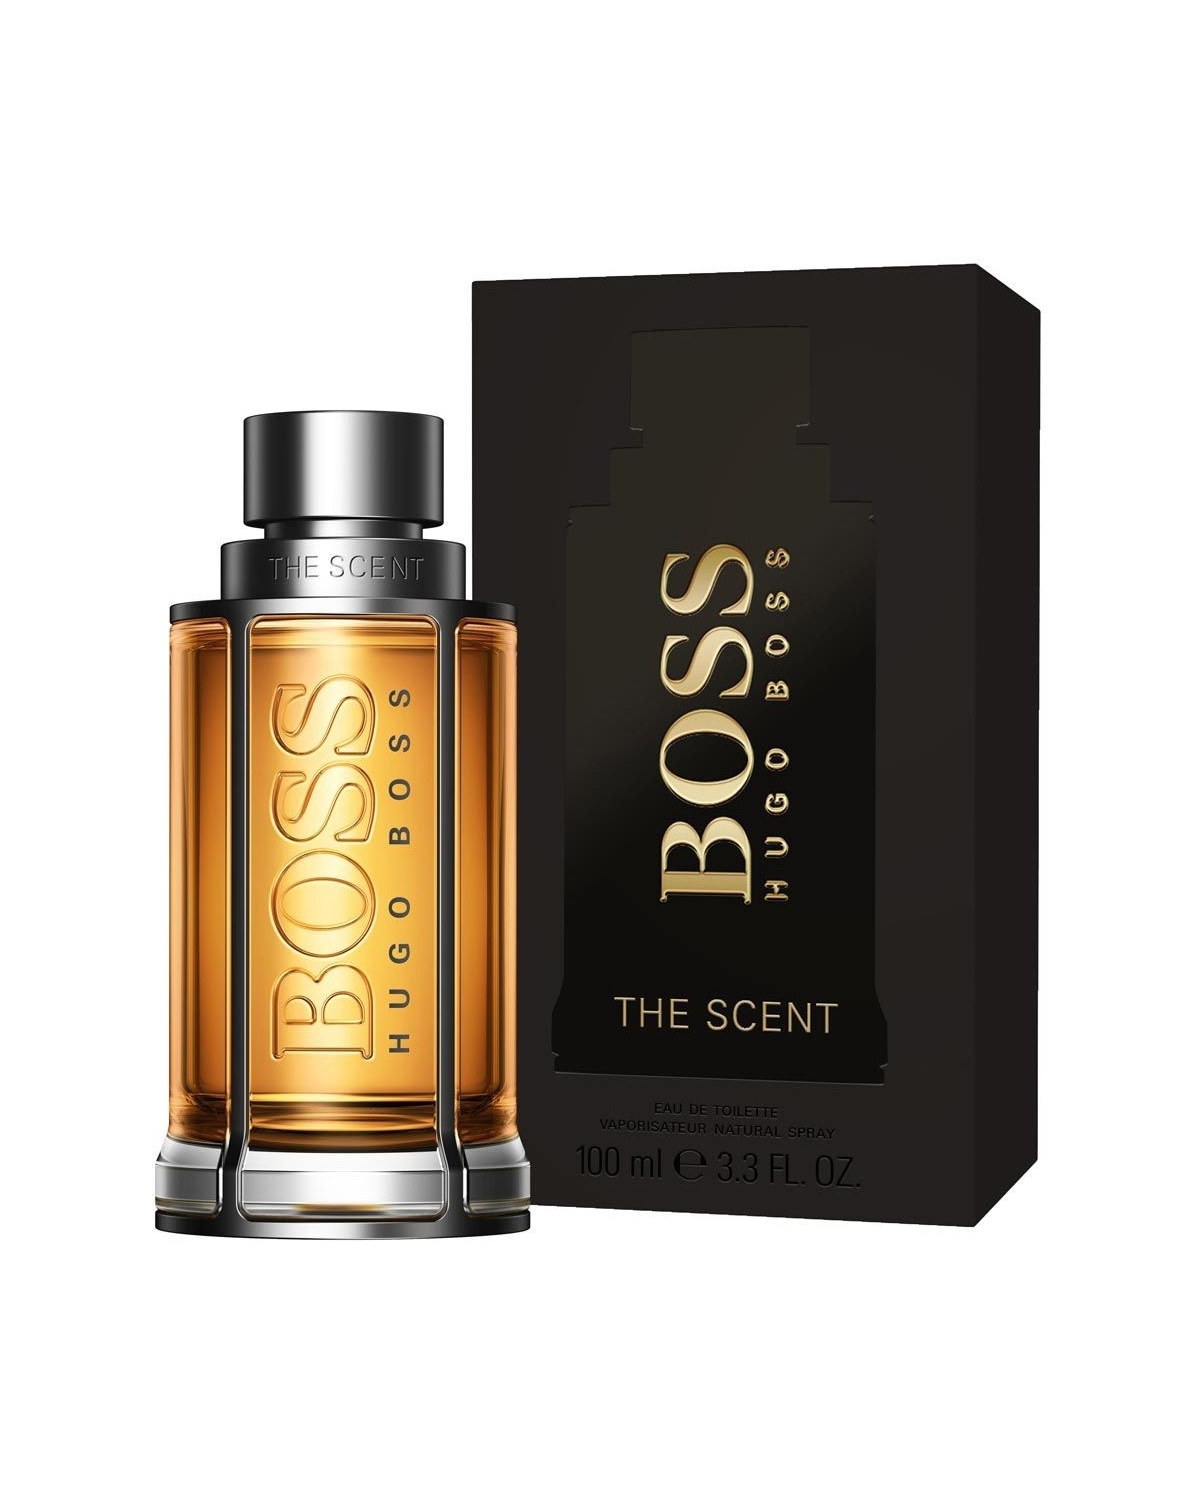 Boss The Scent parfum